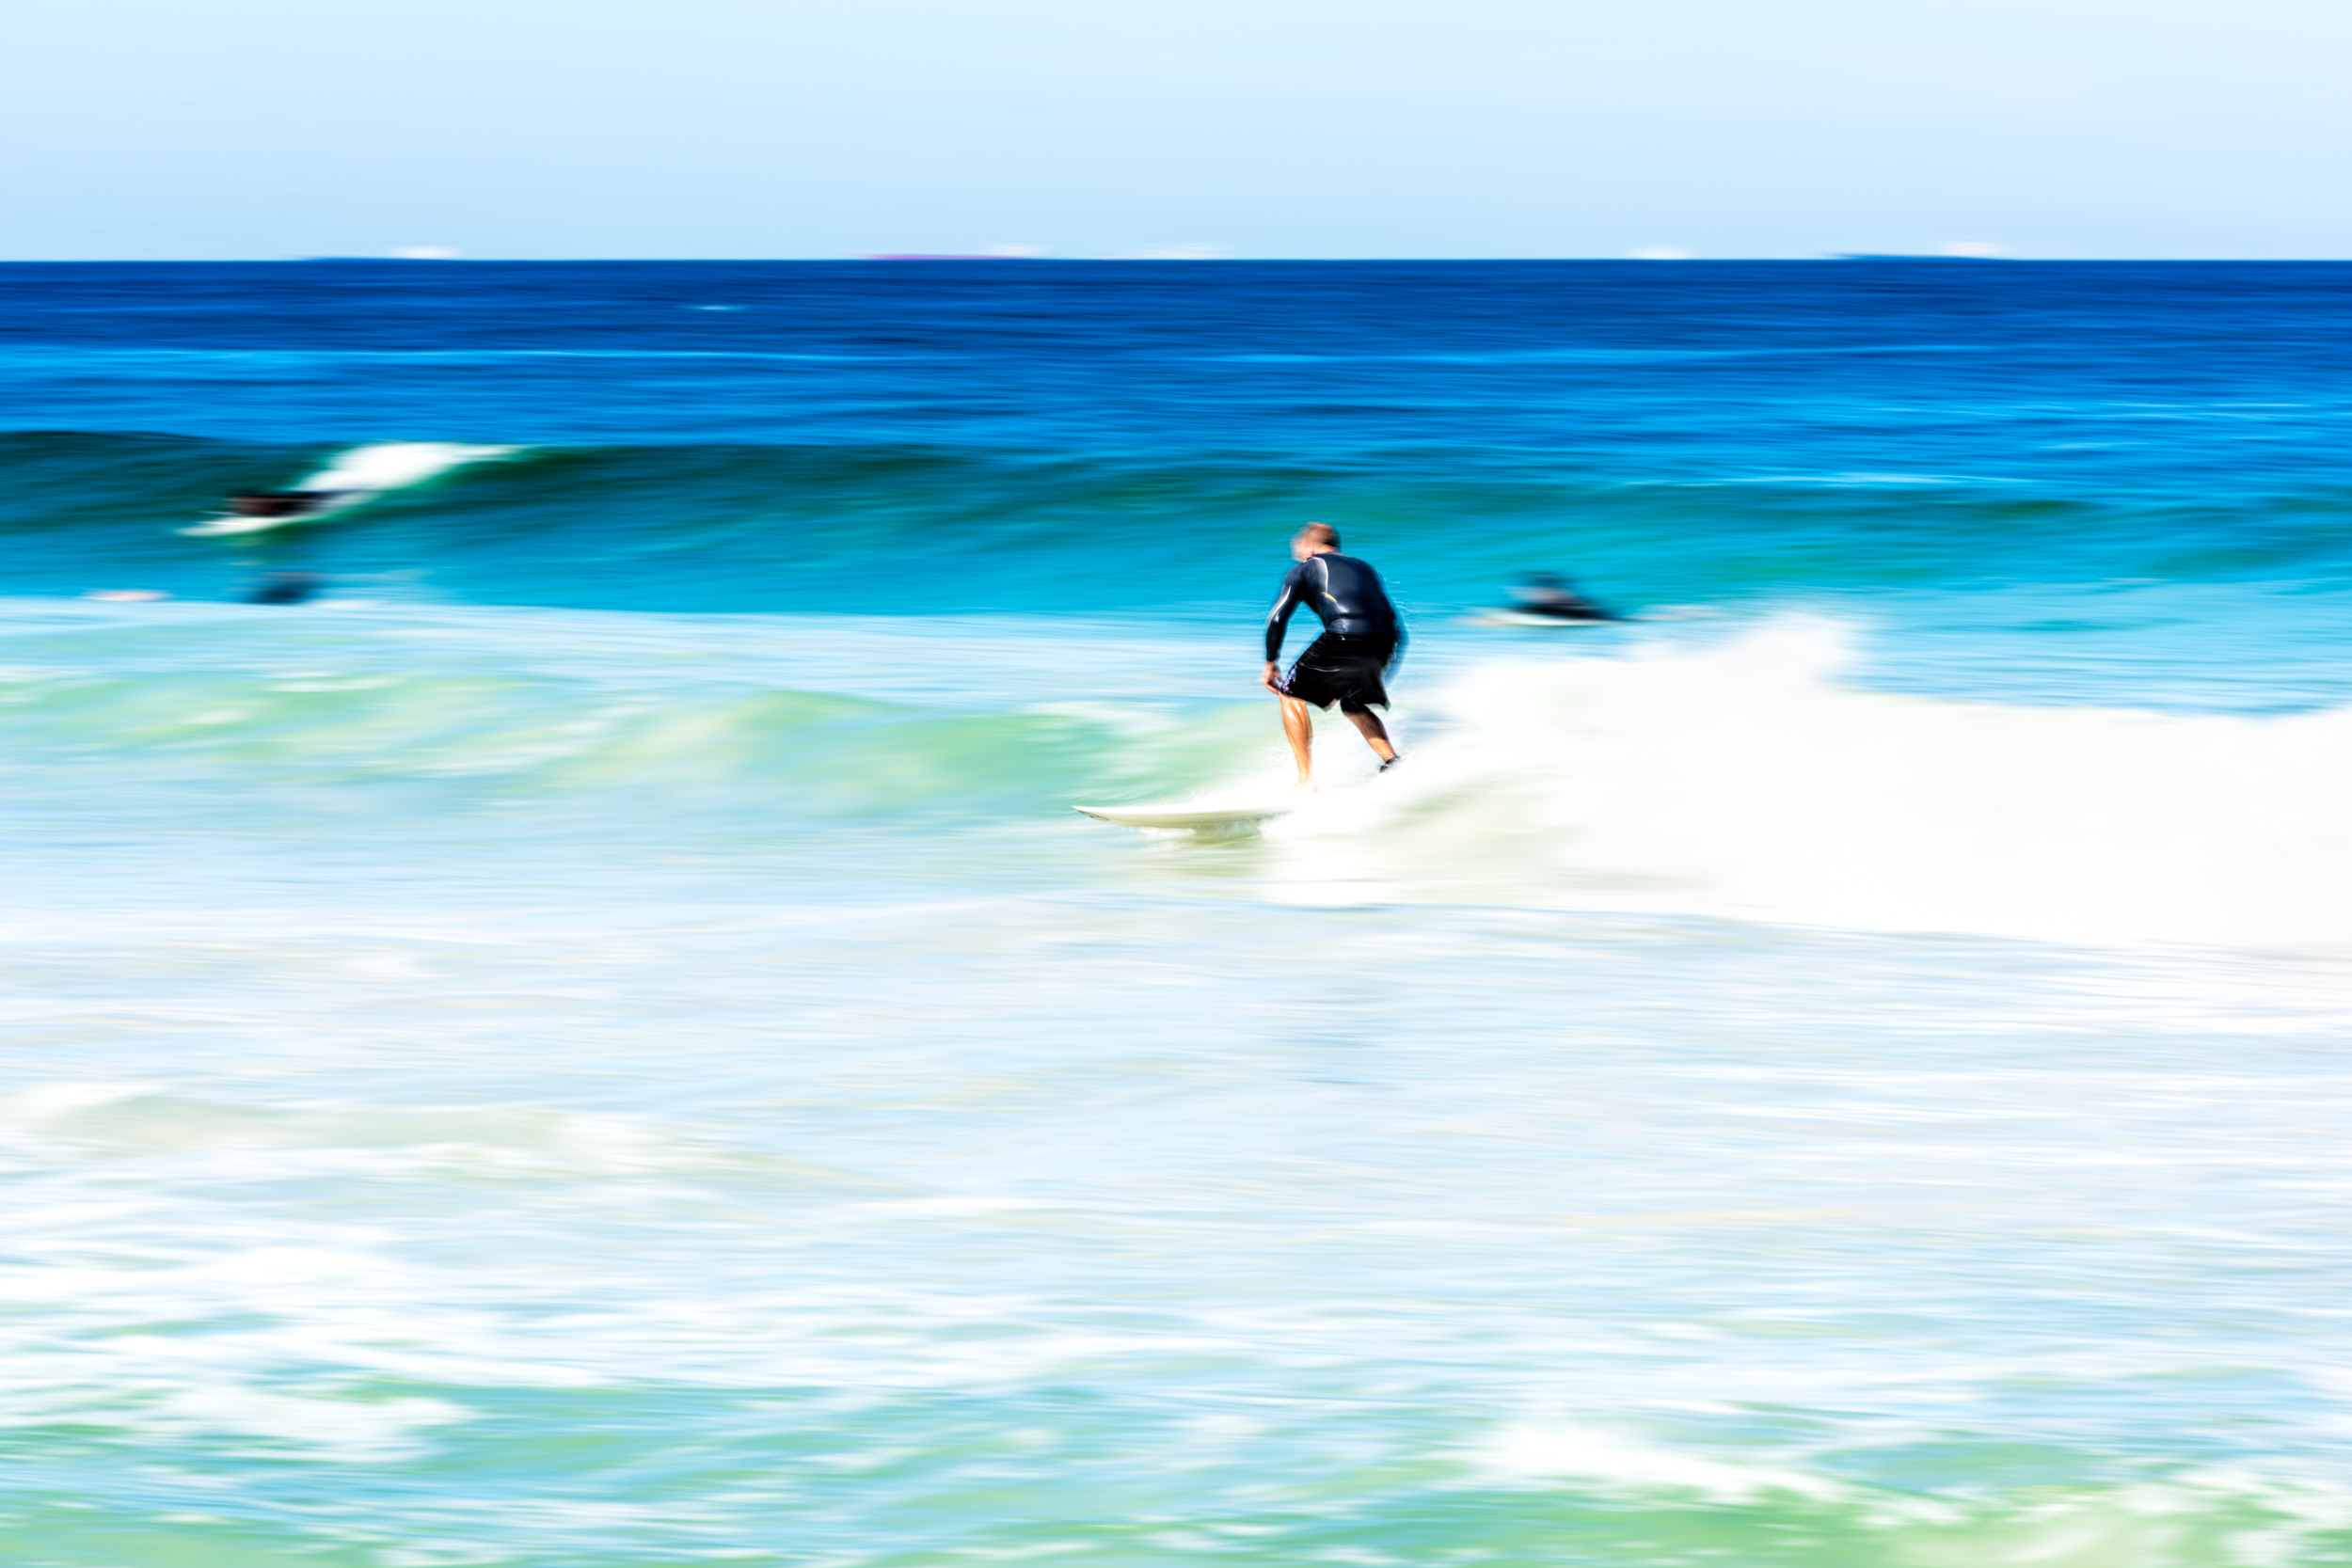 Spyrides_Kyle_Scarbourough_Surf_#1Sessions_23.2.2017.jpg